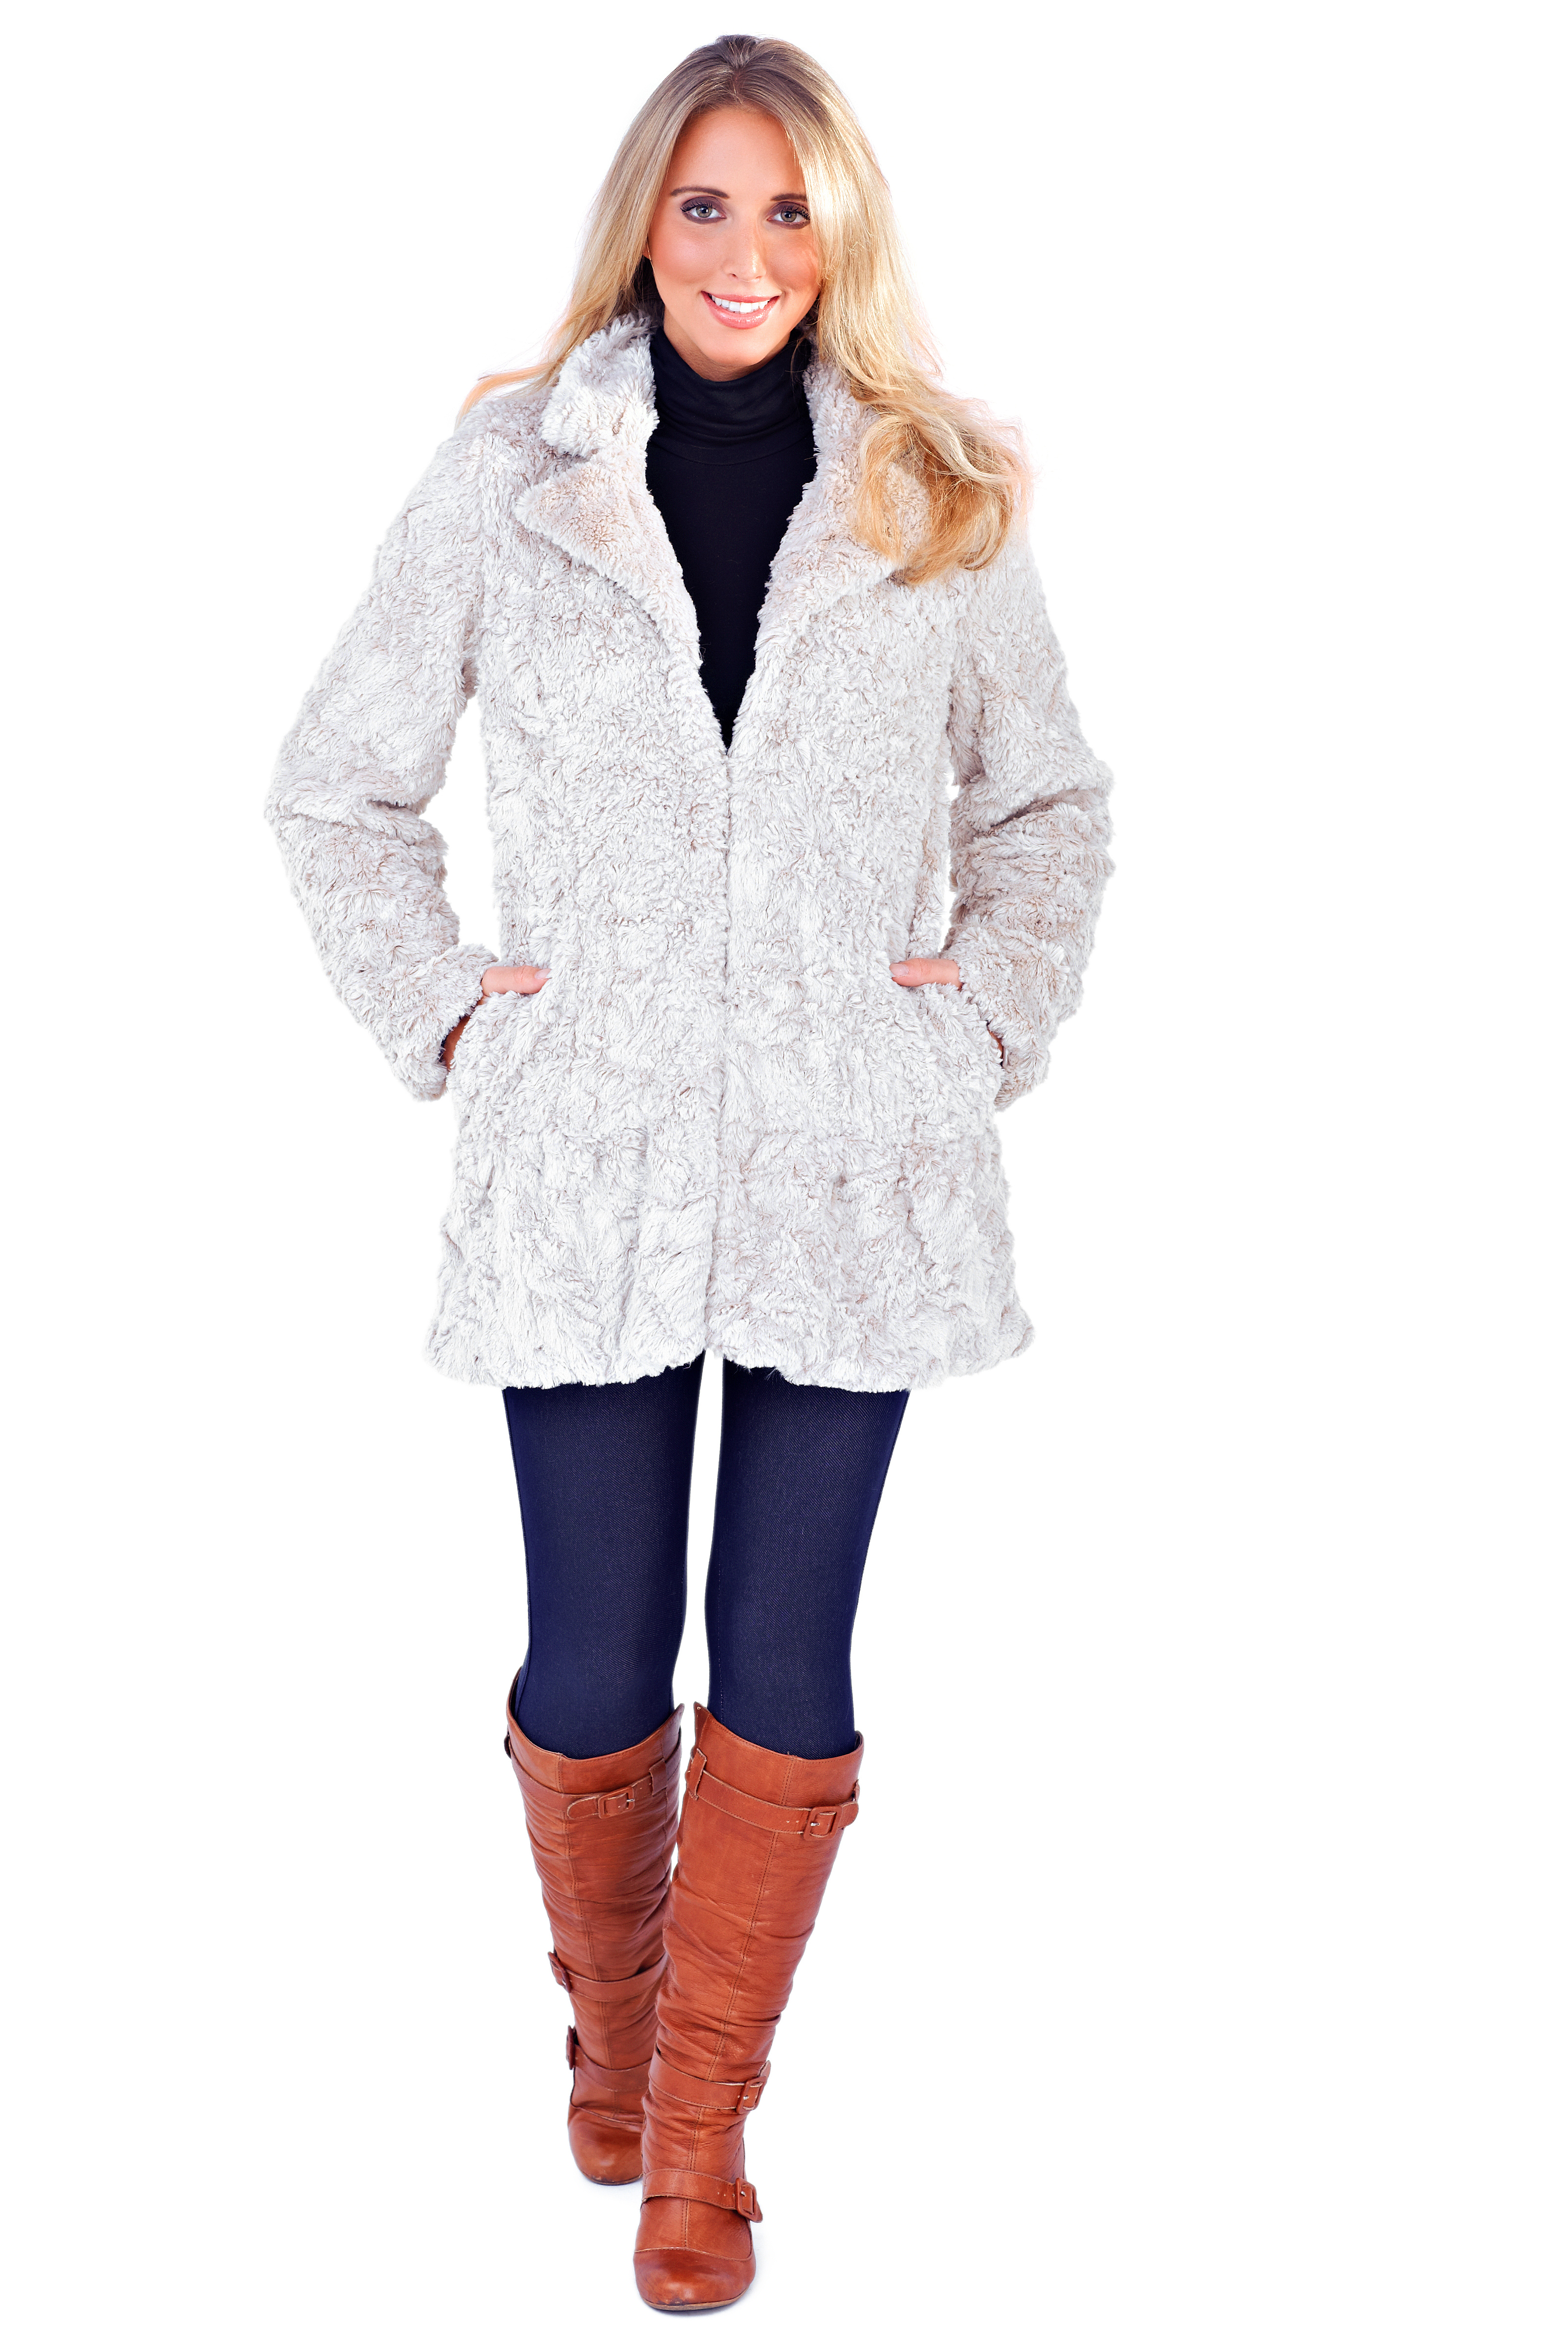 Shop our extensive line of women's faux fur from coats and jackets to ponchos, wraps and apparel plus hats, scarves, gloves and other accessories available with solid colors and animal prints.